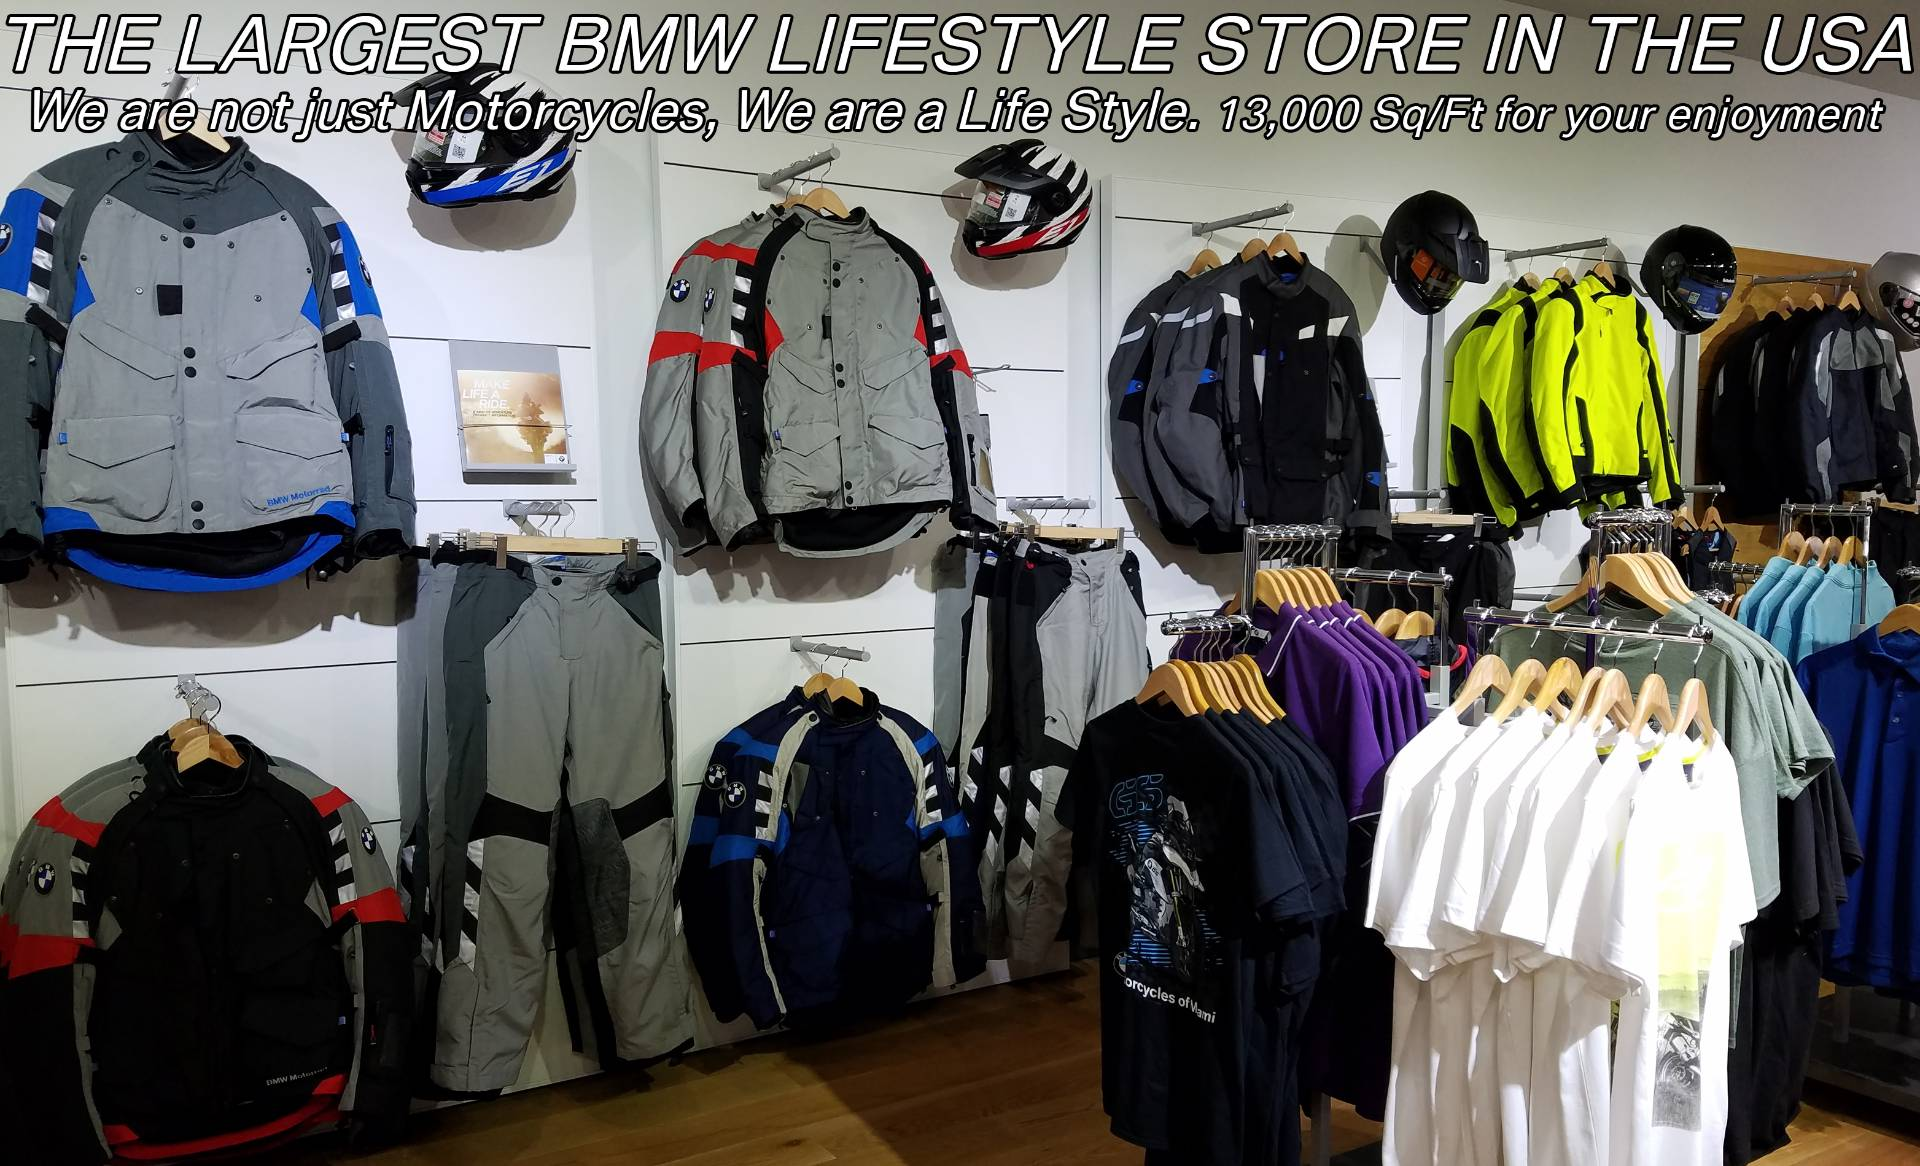 BMW Motorcycles of Miami, Motorcycles of Miami, Motorcycles Miami, New Motorcycles, Used Motorcycles, pre-owned. #BMWMotorcyclesOfMiami #MotorcyclesOfMiami. - Photo 46